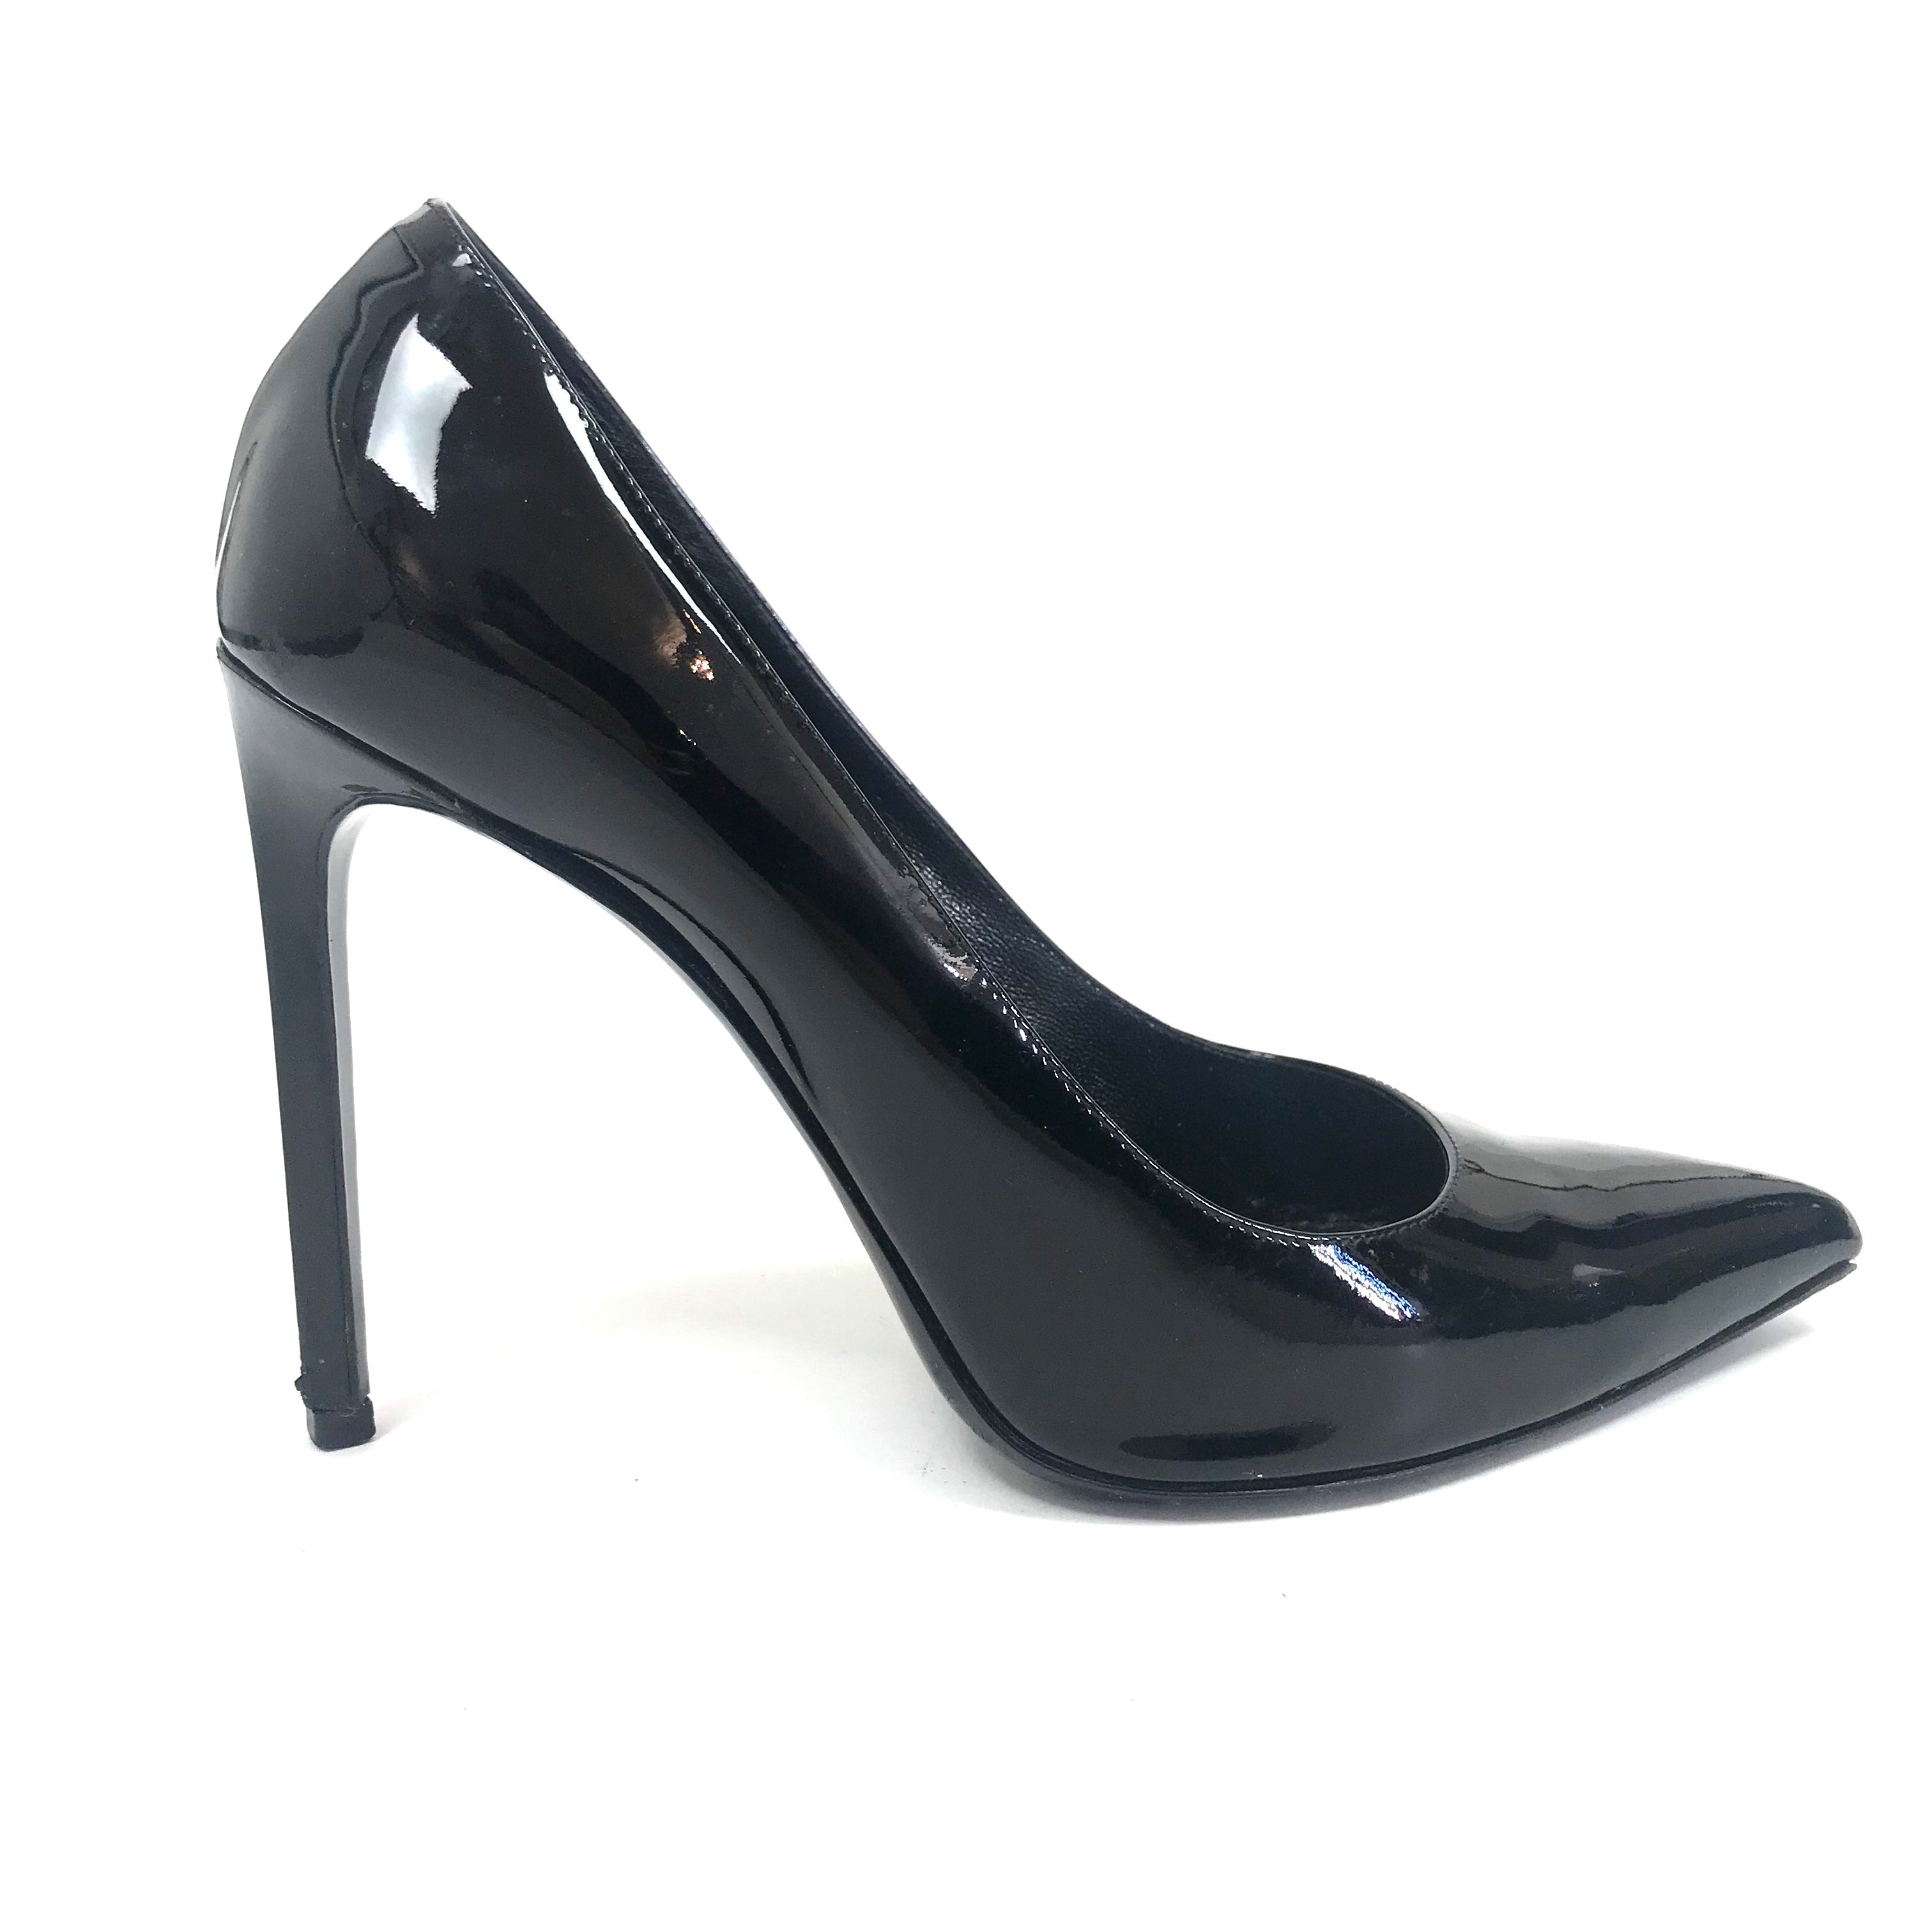 YVES SAINT LAURENT Heels Black - 40